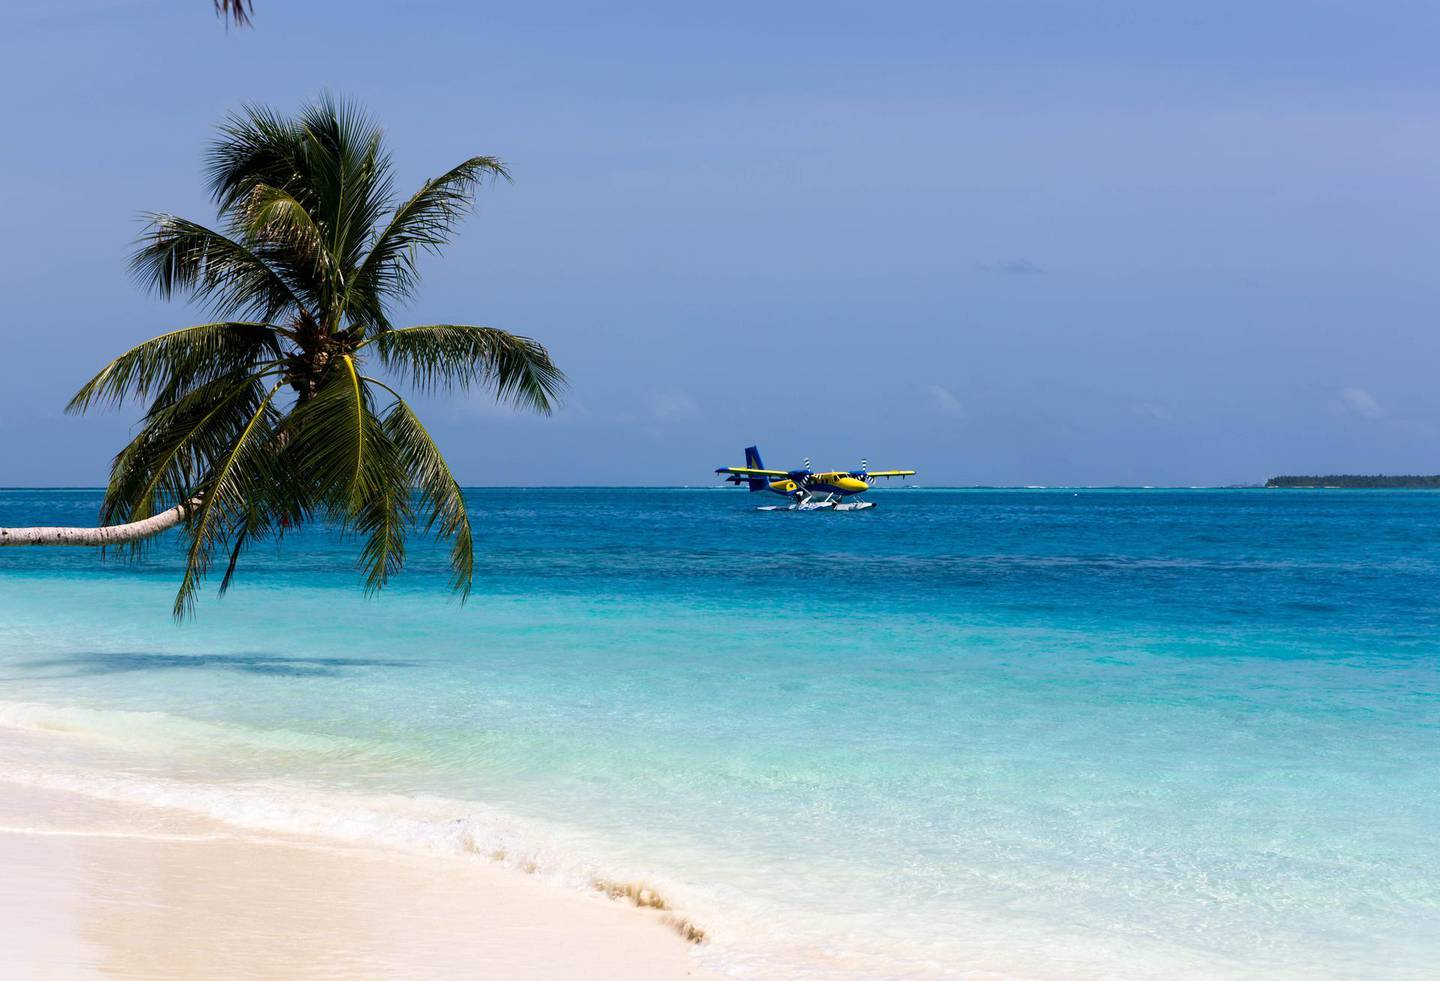 Palmtree leaning over the sea on a  beach with white coral sand while landing a seaplane on the maldive island Conrad-Rangali. Getty Images